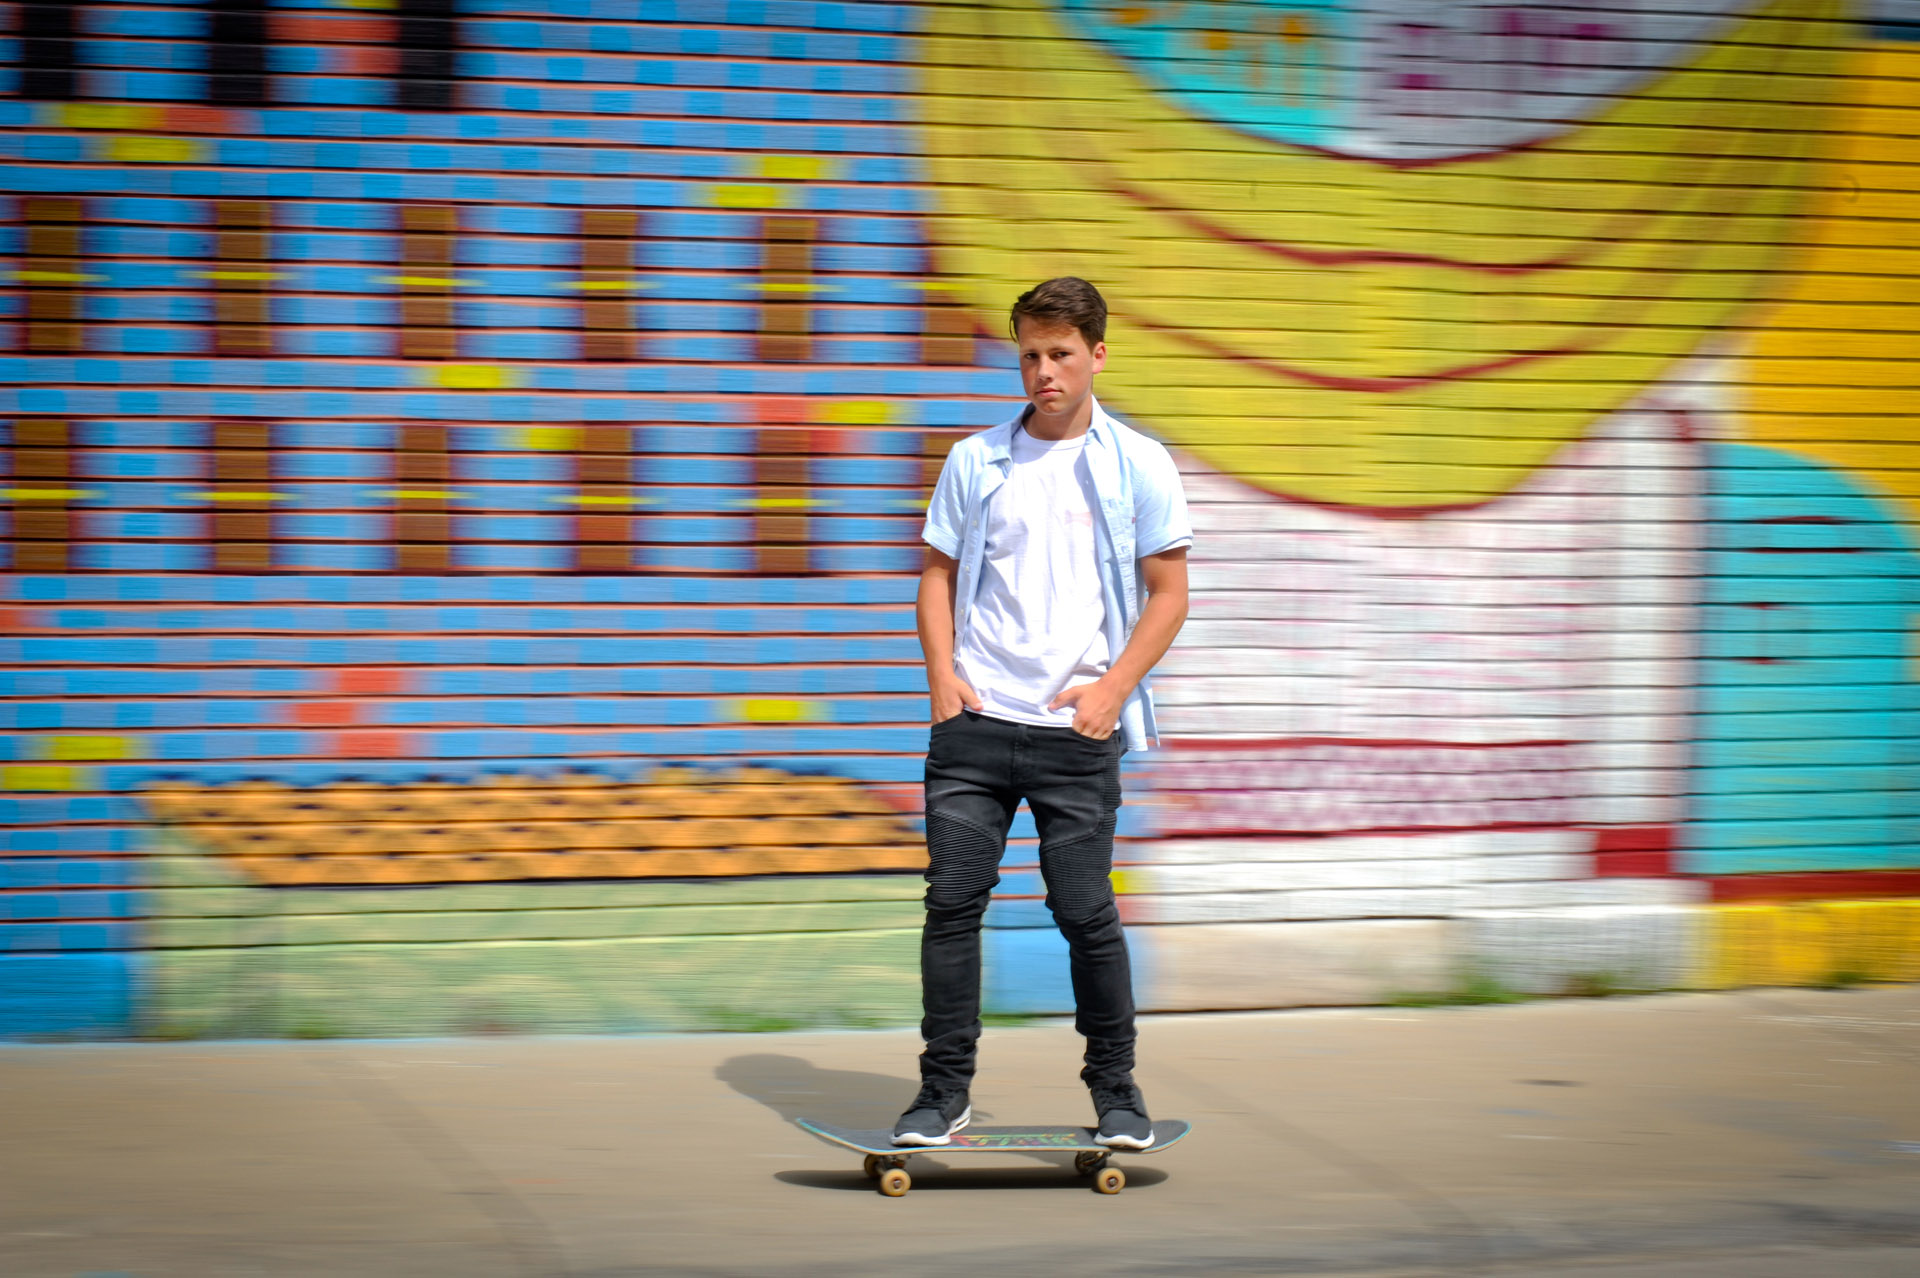 Best Detroit senior photographer's high school senior picture of a Bishop Foley senior photo taken on his skateboard in front of graffiti art from downtown Detroit, Michigan.